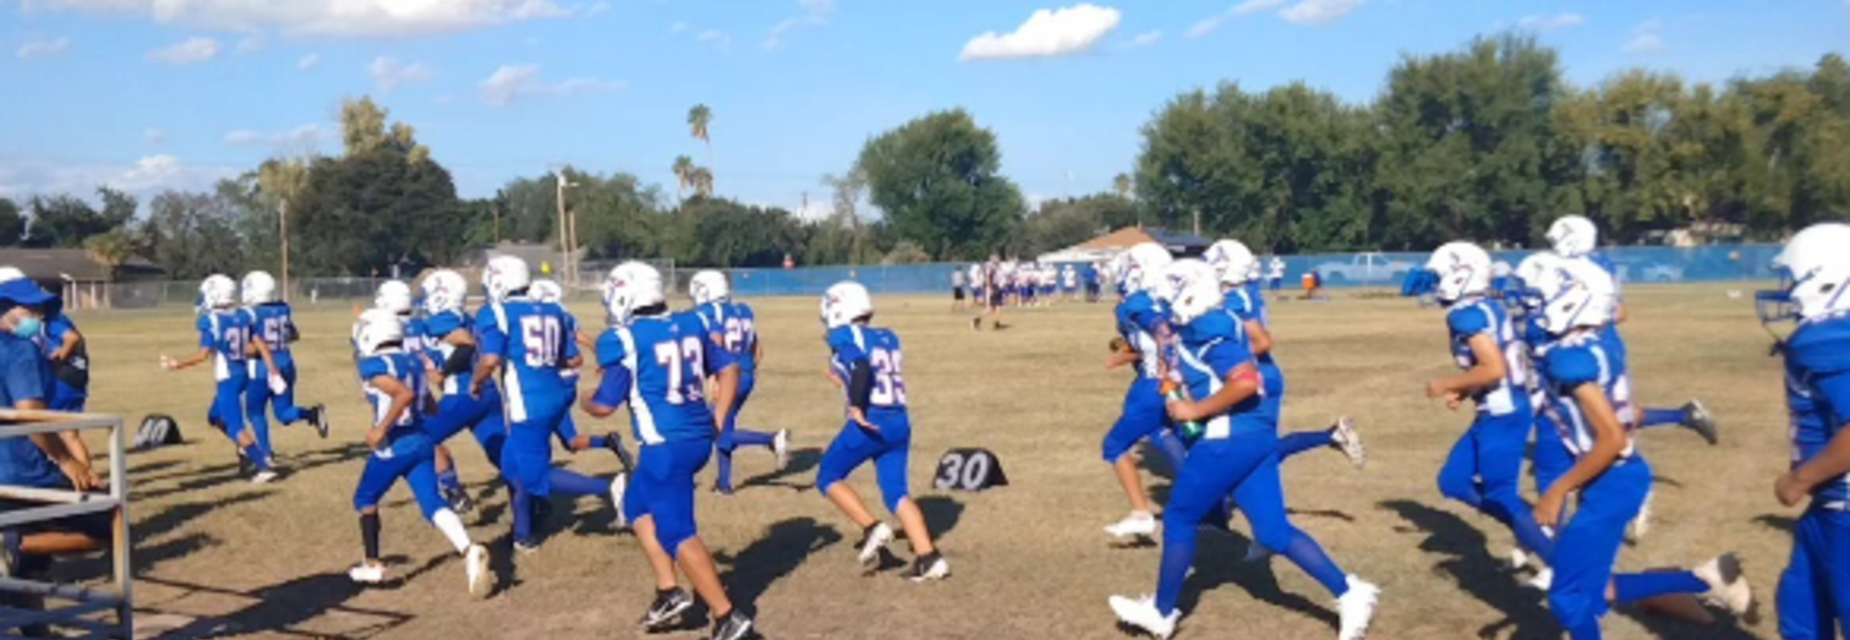 Mission Jr High 8th Grade Football team getting ready for a game.